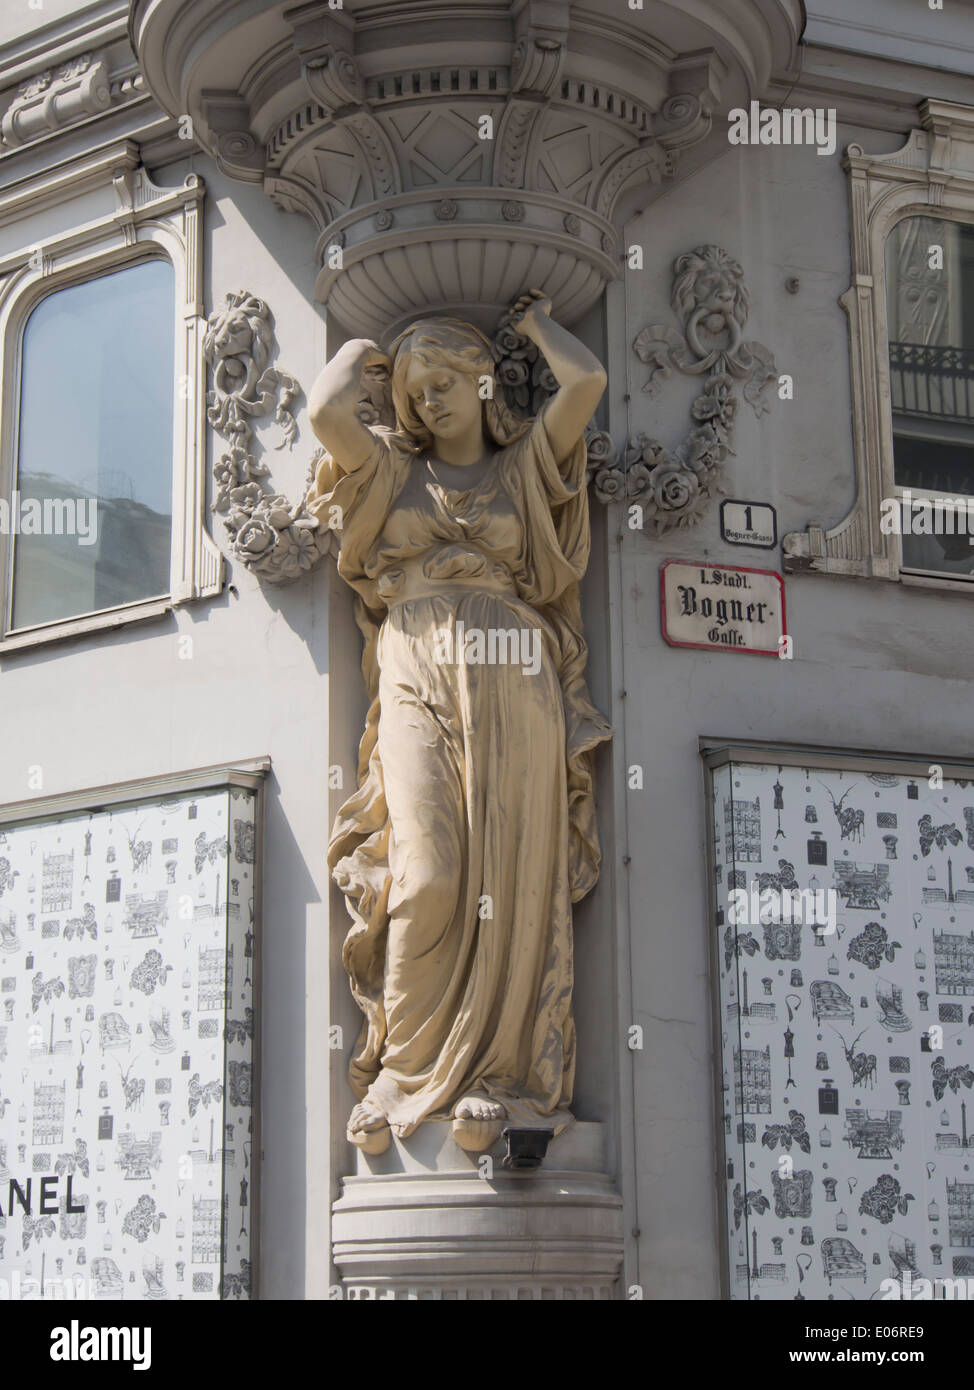 Plaster statue of woman holding up the building, adorning a street corner in the shopping district of Vienna Austria - Stock Image